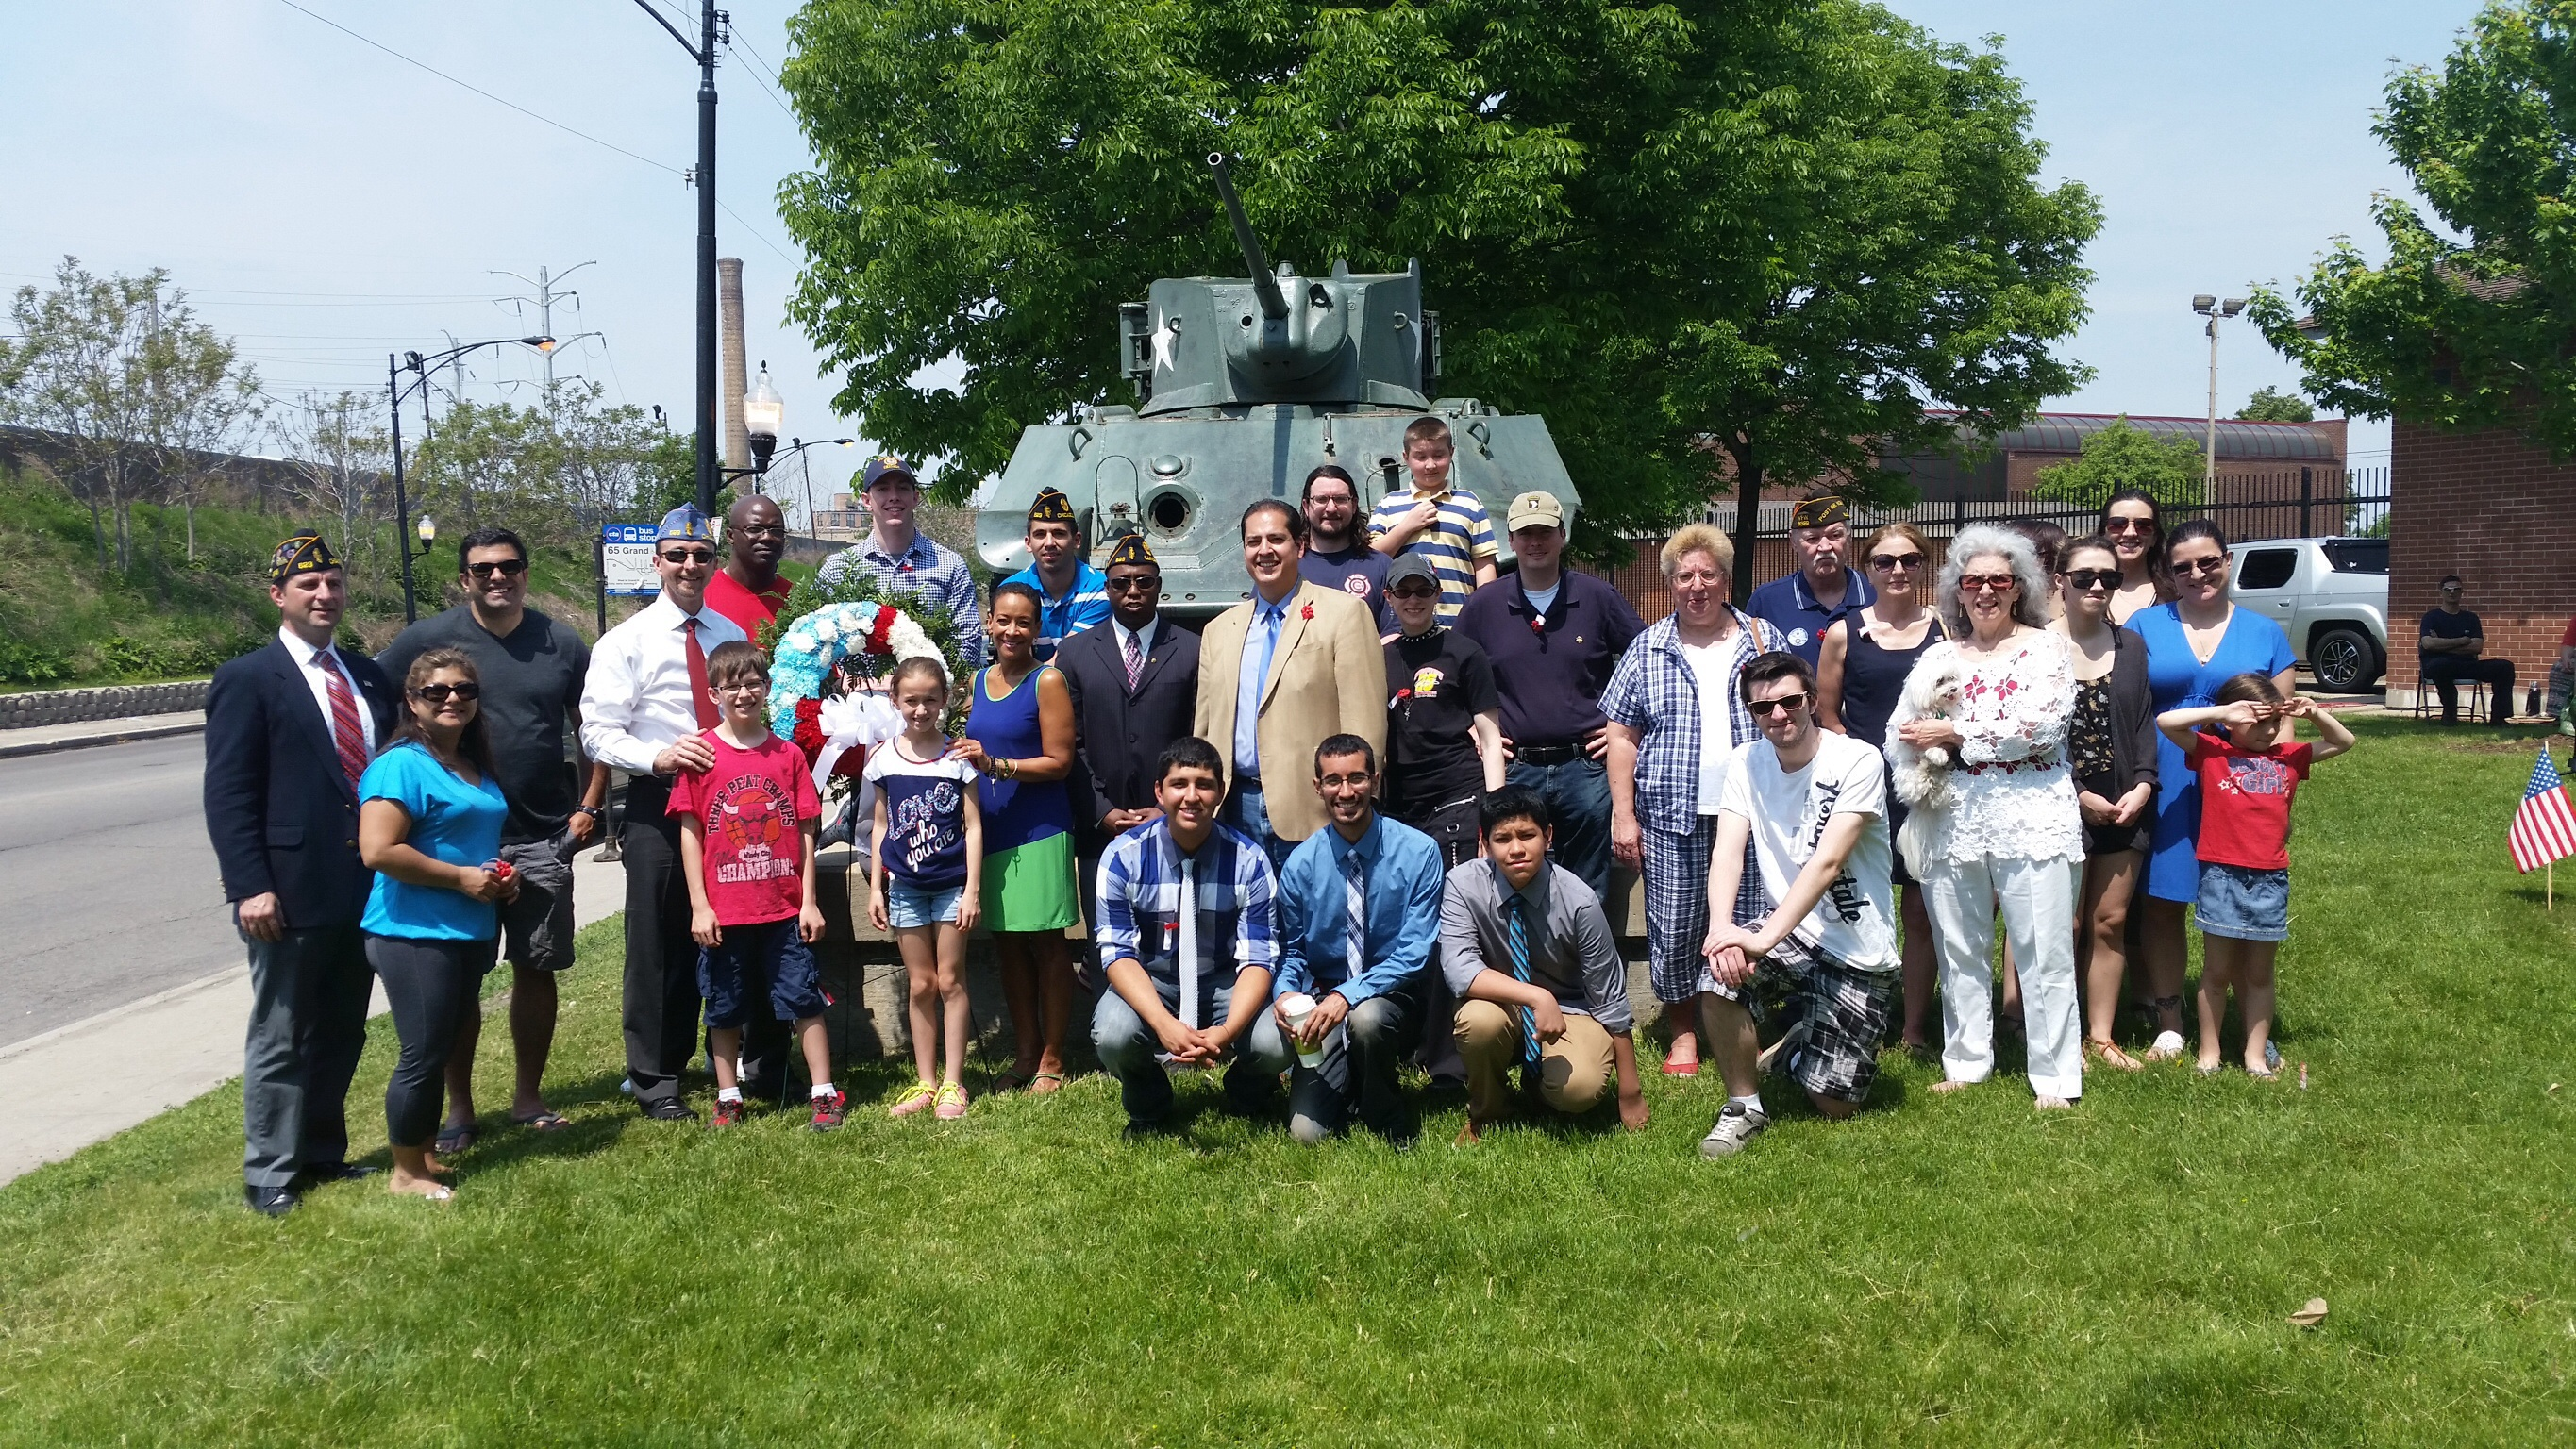 Members of the American Legion Post 623 with SPAC President David R. Ramos and SPNA President Kathy Smith at the 2014 Memorial Day celebration at Smith Park.